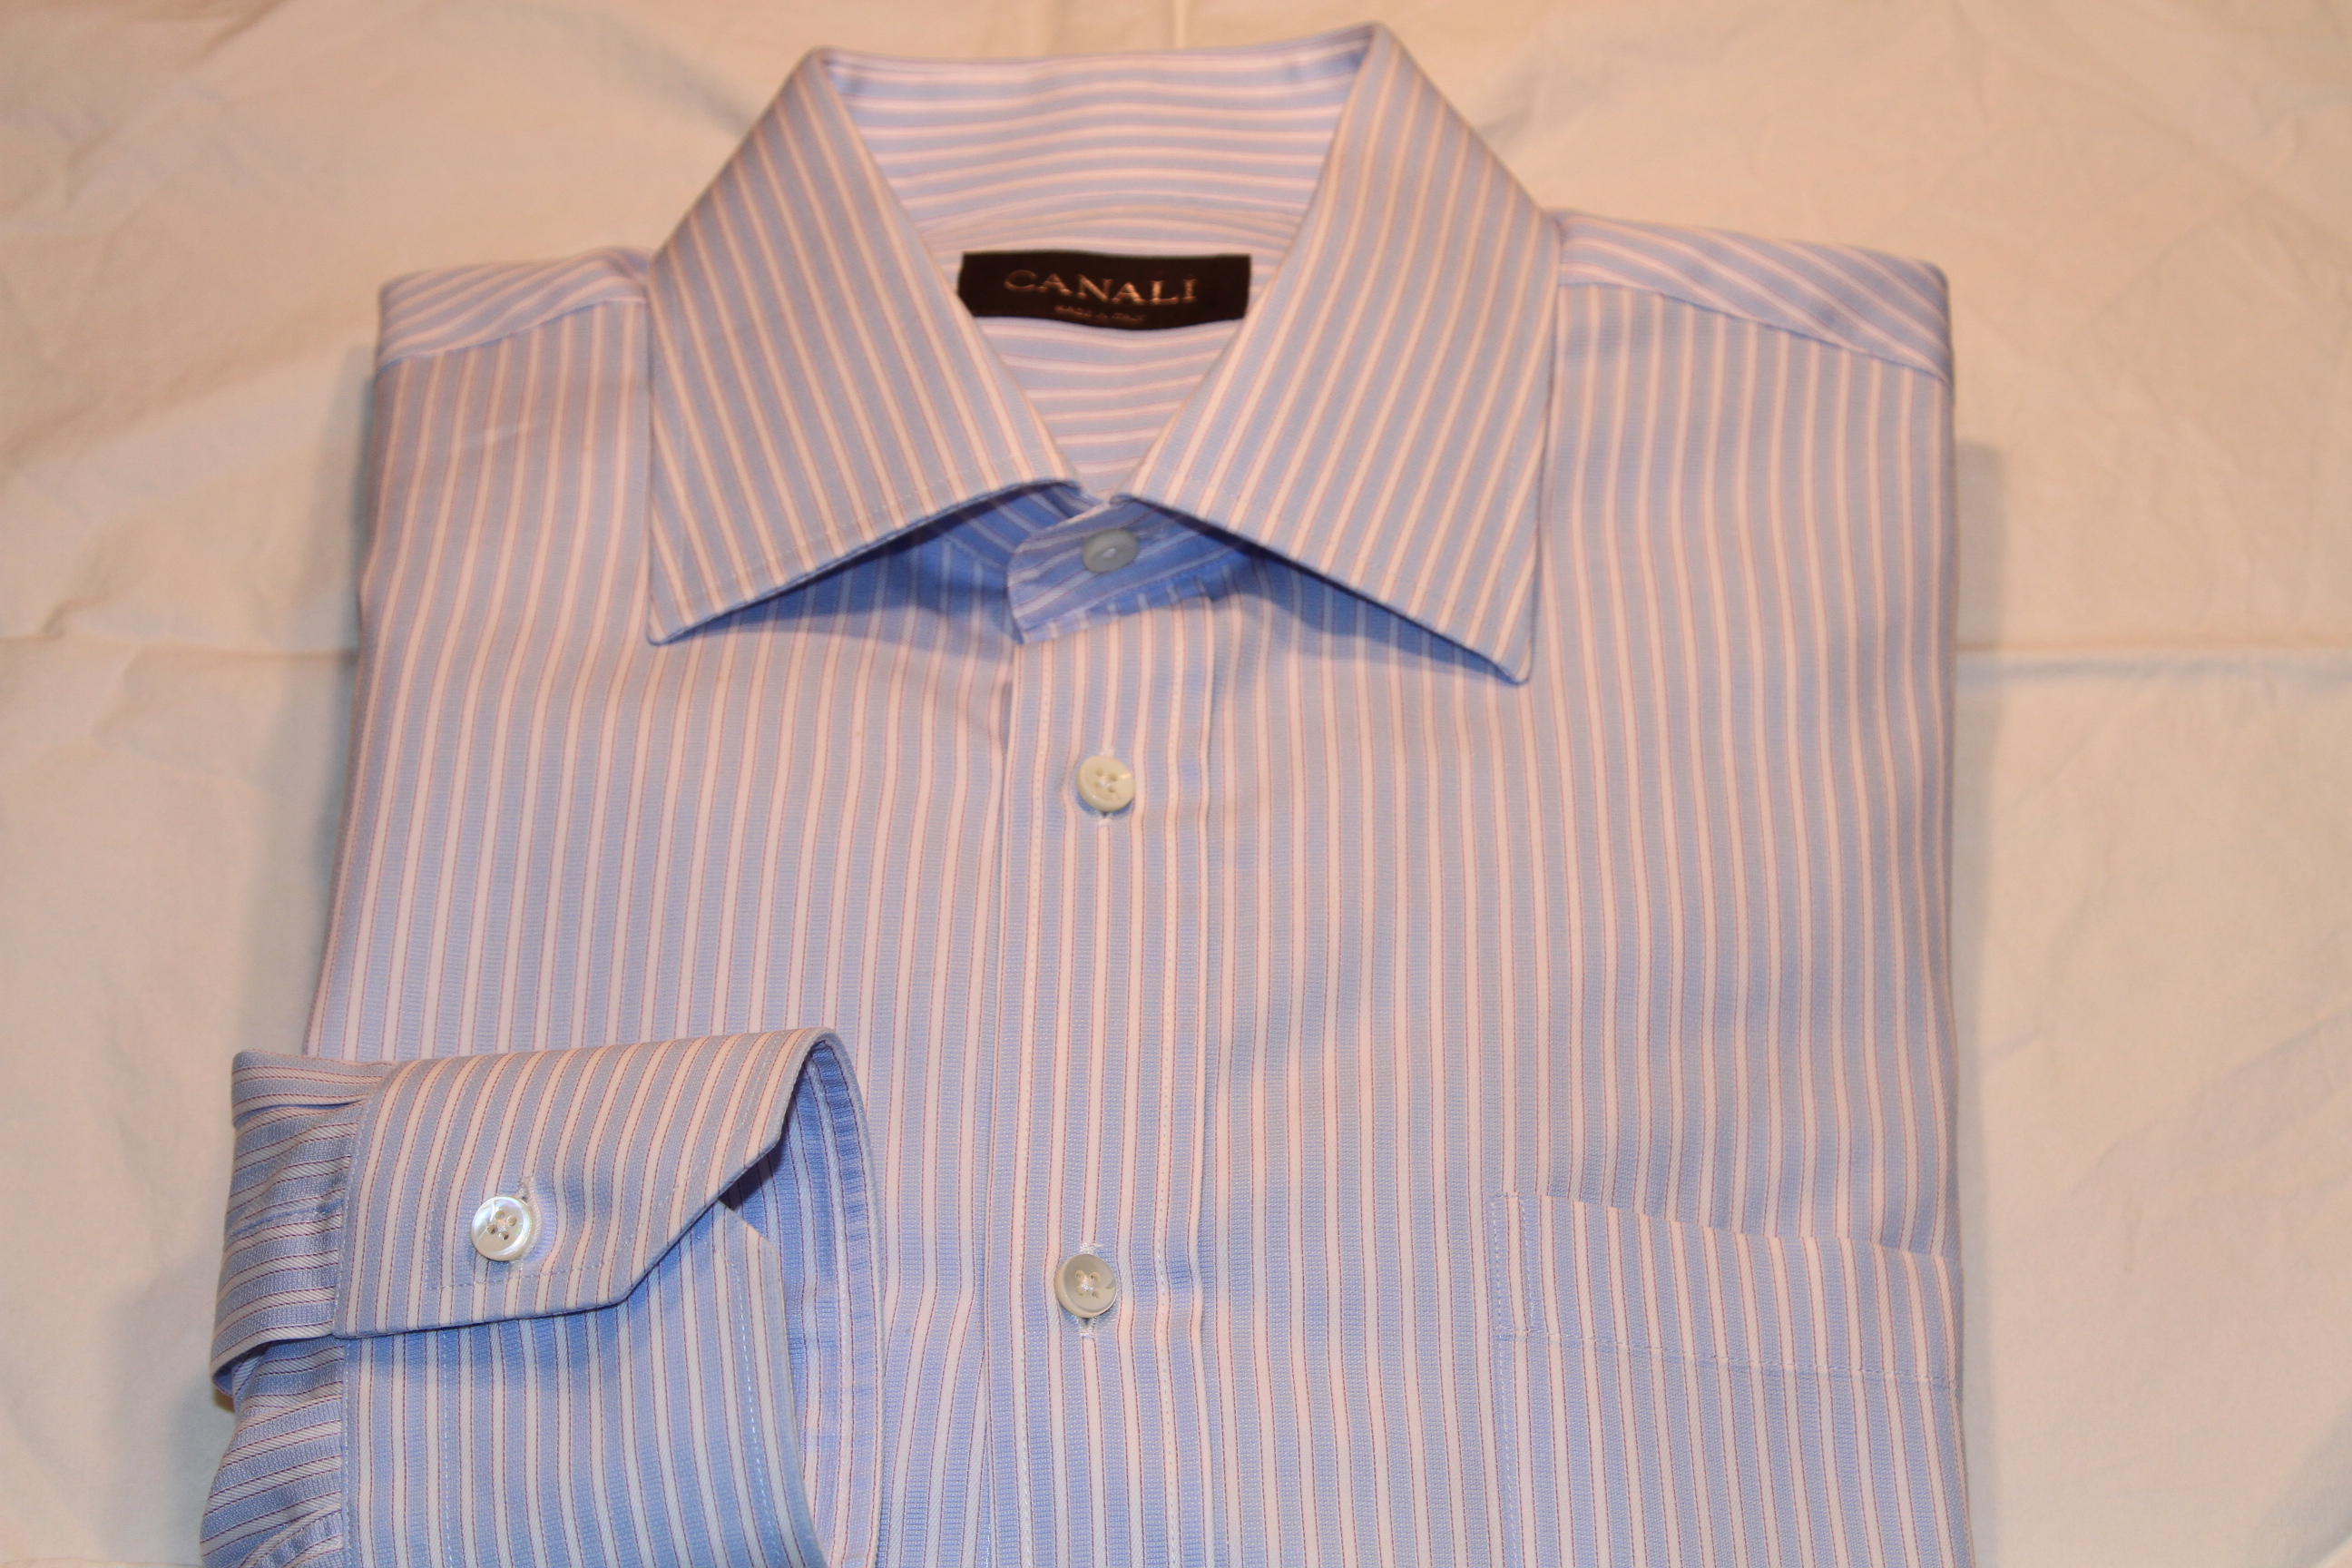 #17 - Canali 41/16 Blue with White and Red Stripe